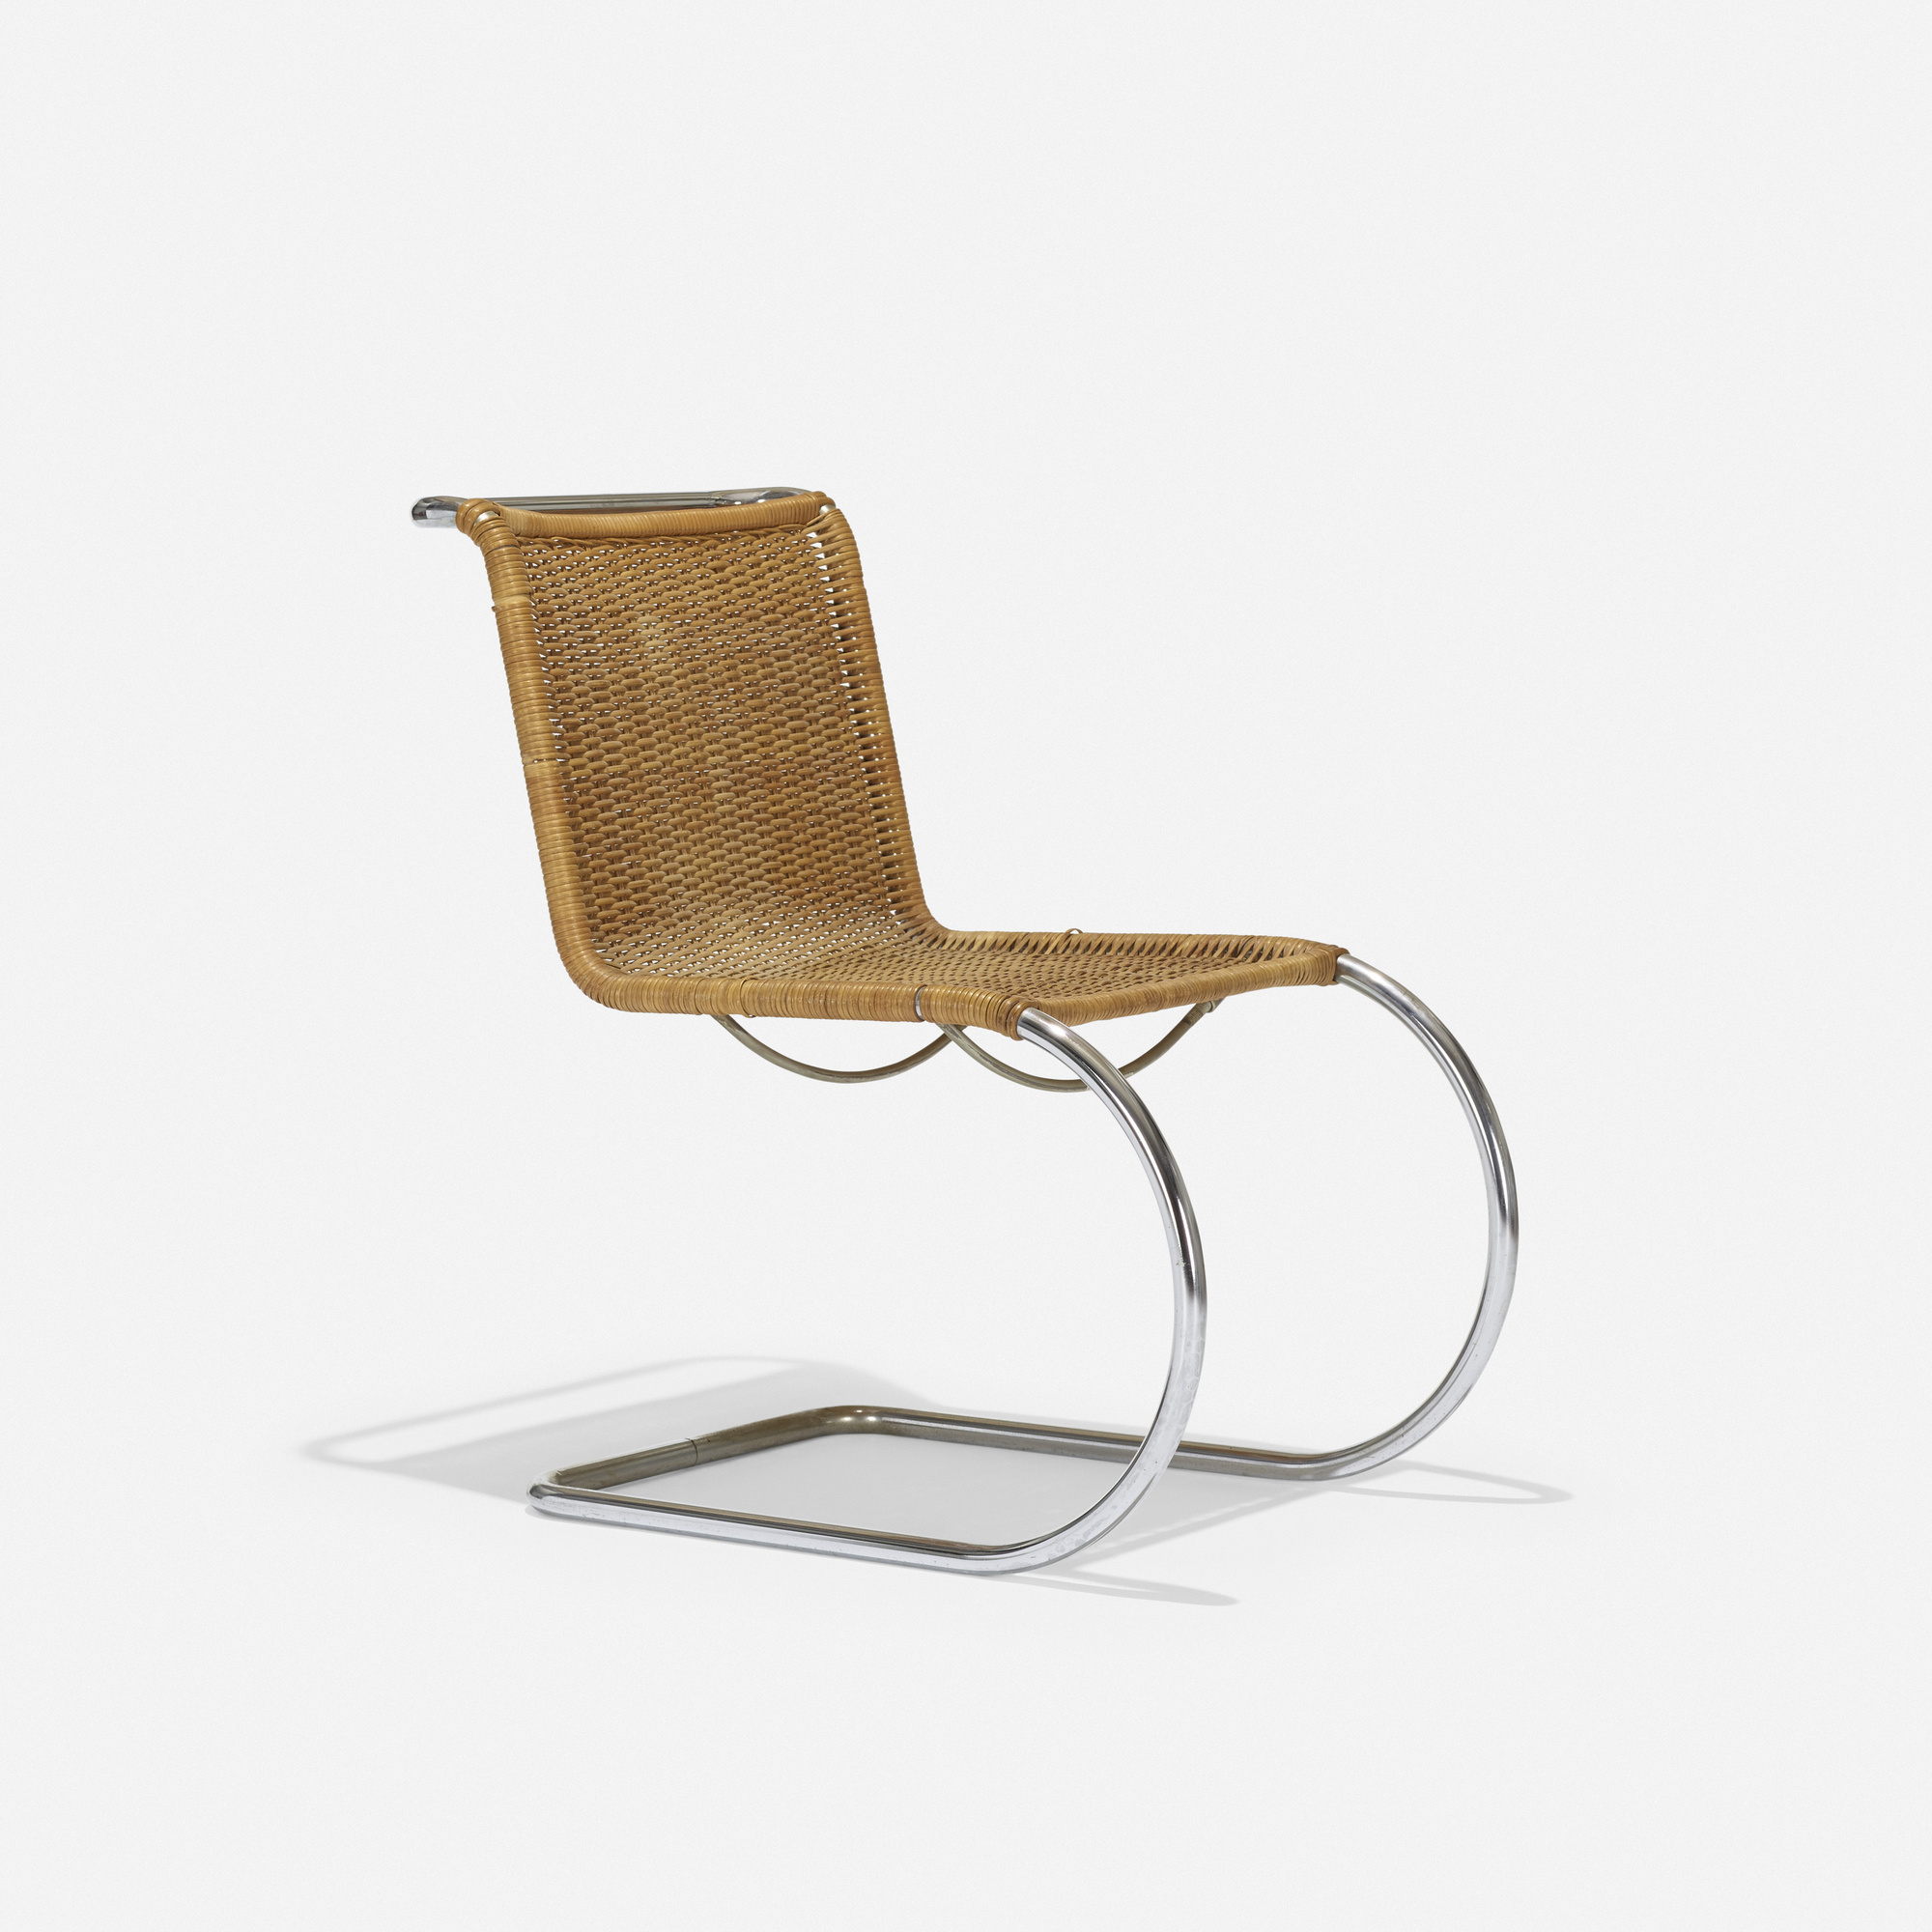 214 Ludwig Mies van der Rohe MR10 chair Taxonomy of Design